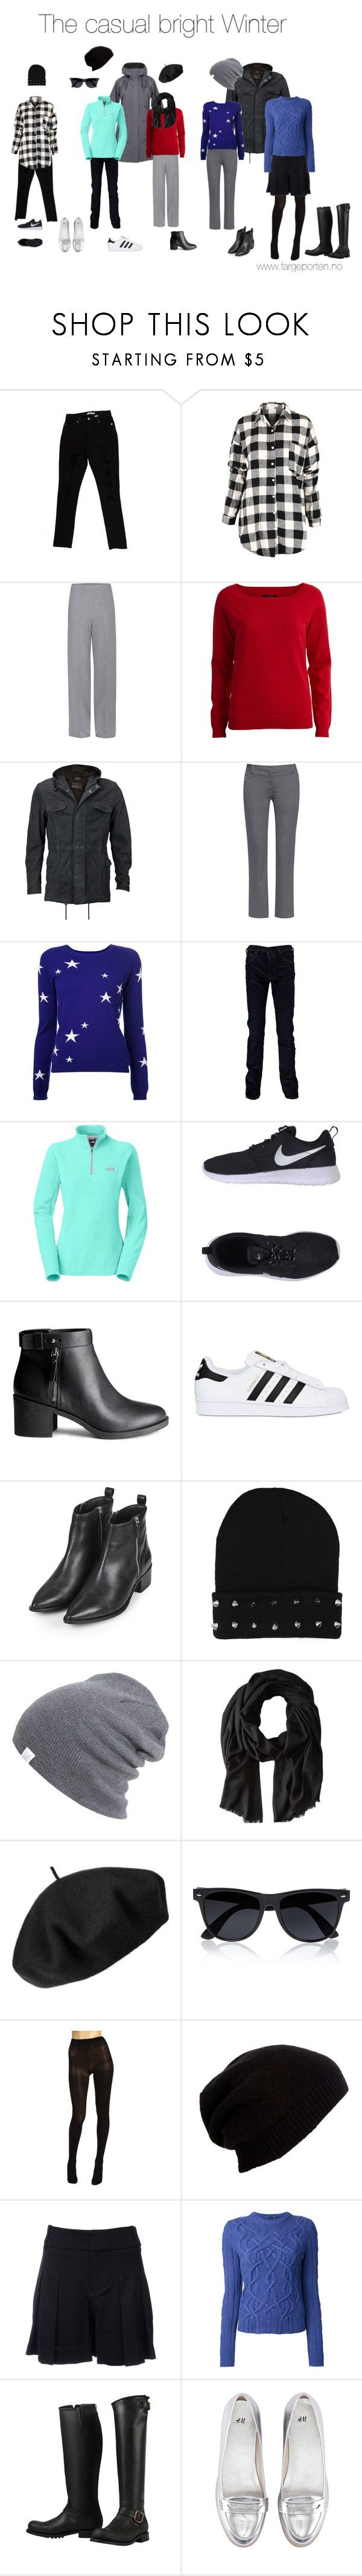 """""""The casual Bright Winter"""" by fargeporten ❤ liked on Polyvore featuring Haider Ackermann, VILA, VIPARO, Tory Burch, Chinti and Parker, STONE ISLAND, The North Face, NIKE, H&M and adidas Originals"""